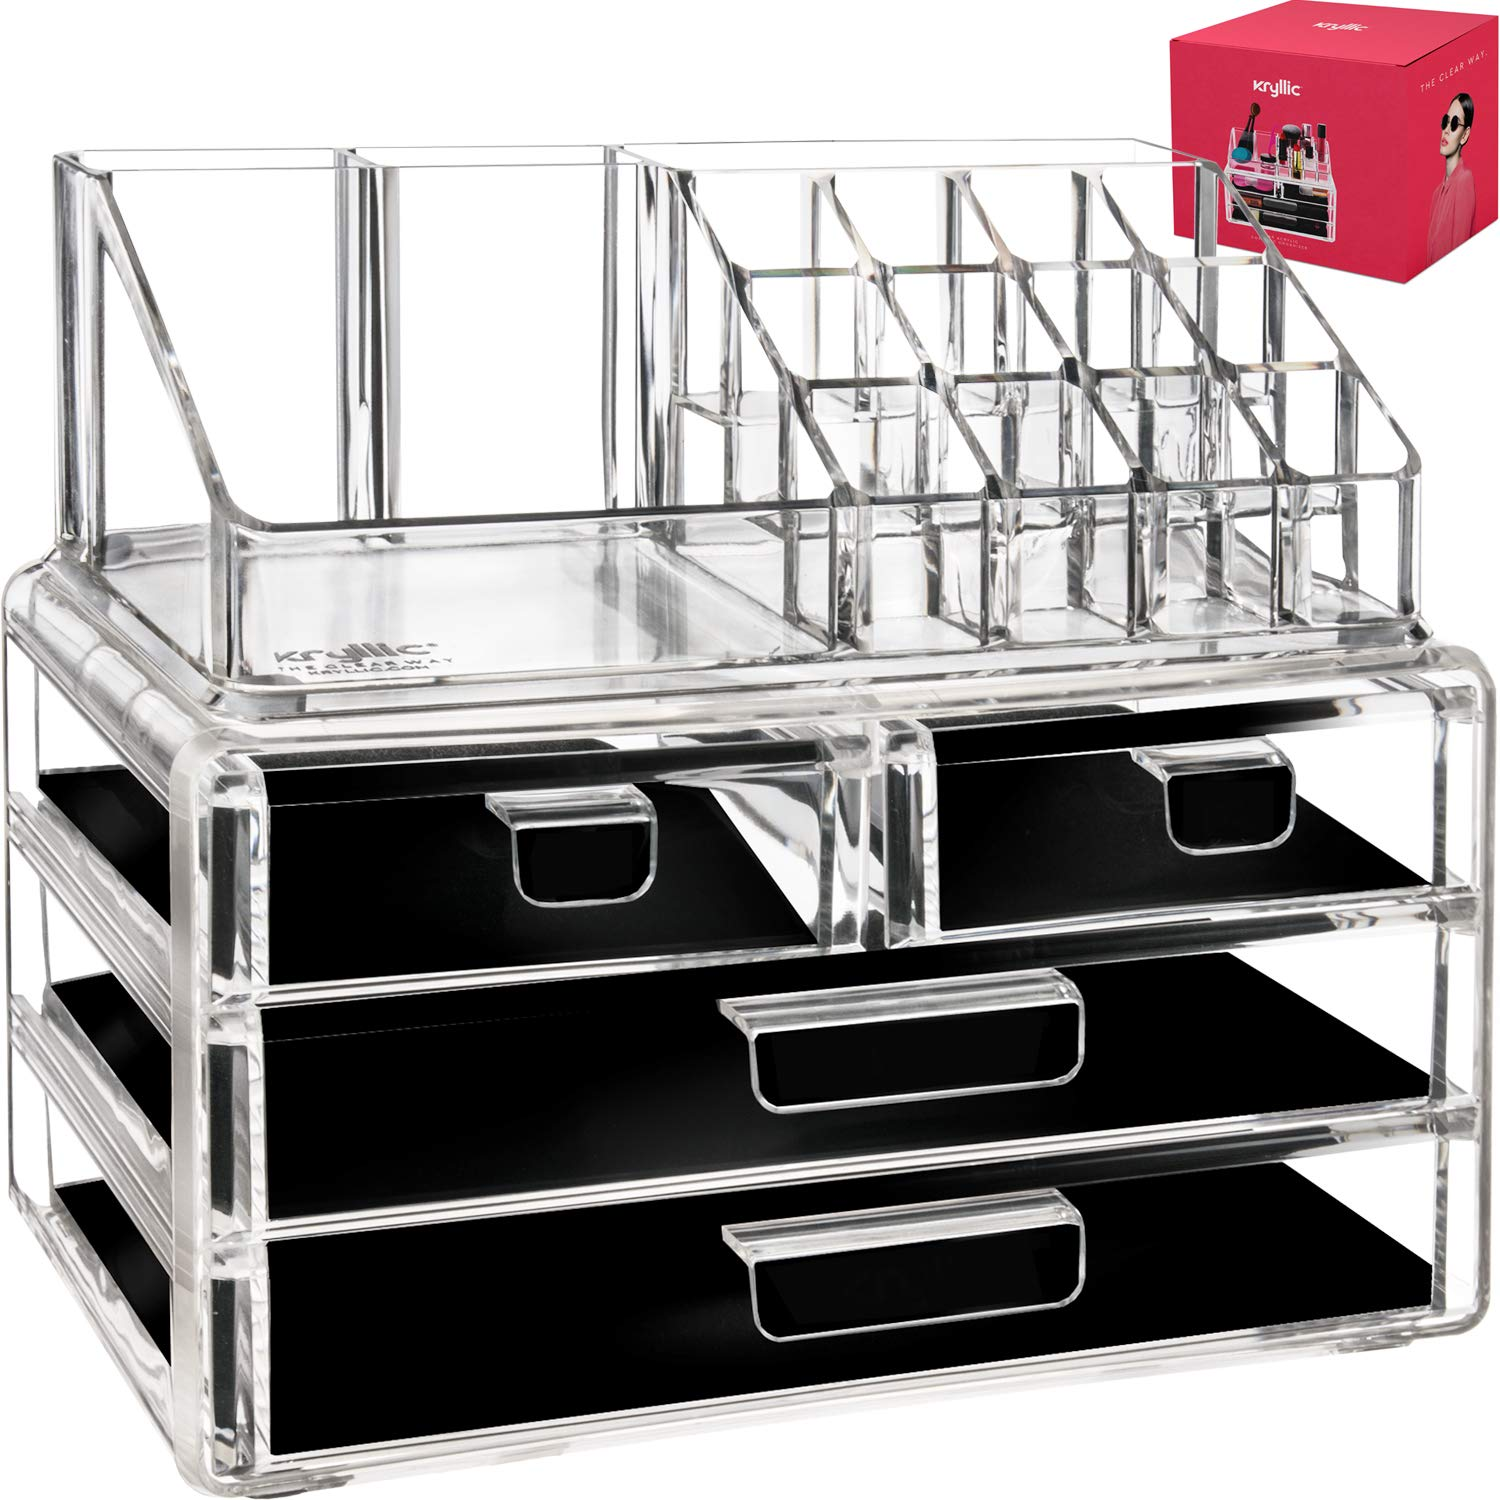 Acrylic Makeup Jewelry Vanity Organizer - Clear lipstick Make up brush display case container for beauty products! 16 slot 4 box drawers holder storage earring and other cosmetic items for bathroom! Kryllic COMIN16JU033459